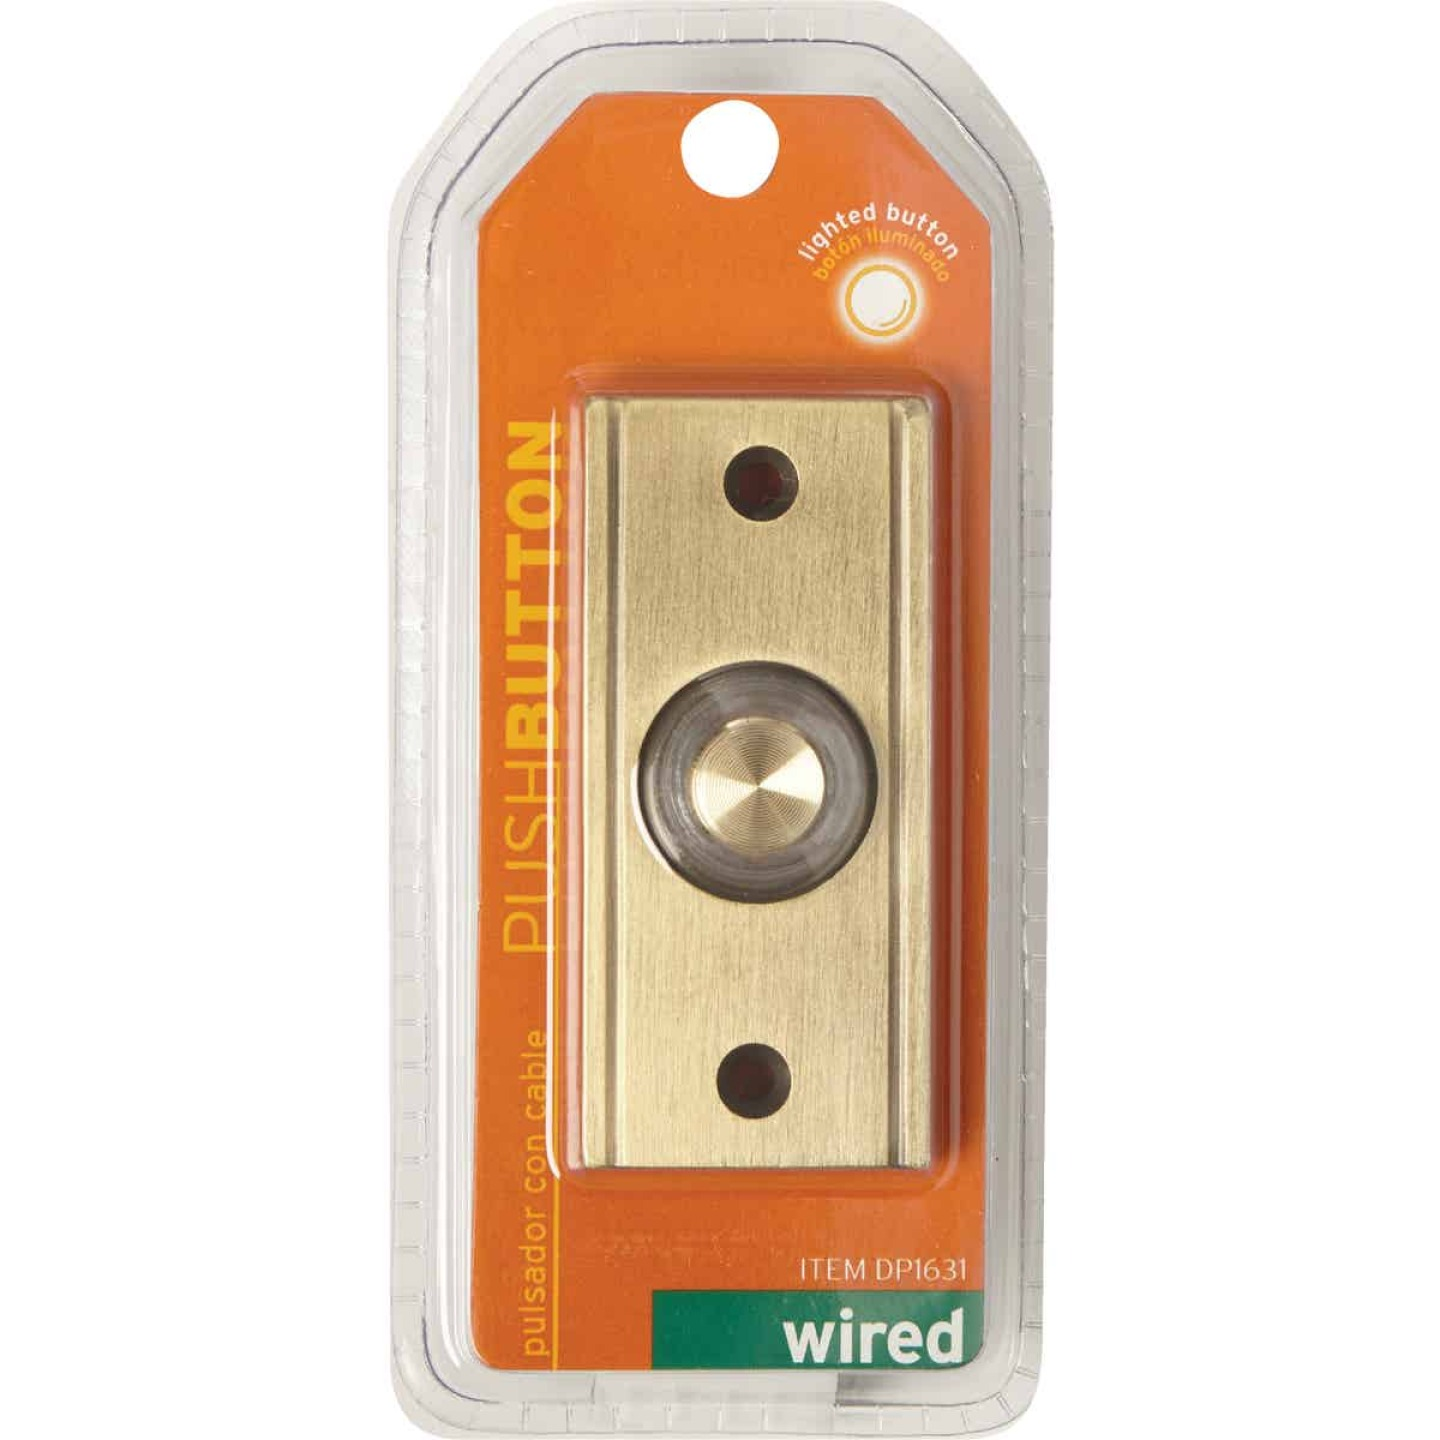 IQ America Wired Antique Brass Lighted Doorbell Push-Button Image 2